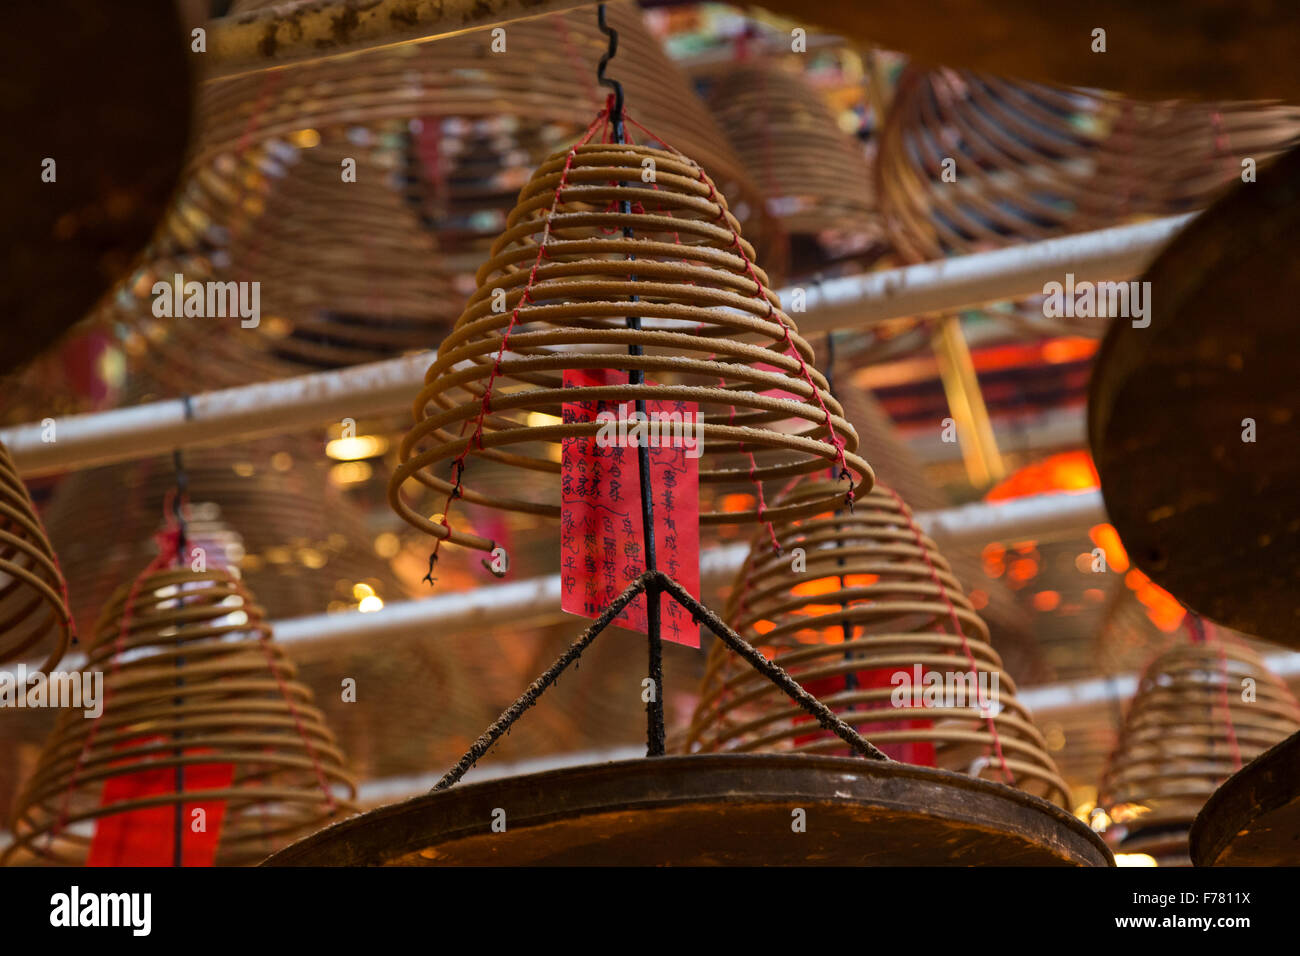 Incense cones at the Man Mo Temple in Sheung Wan, Hong Kong, China. Focused on one coil. - Stock Image